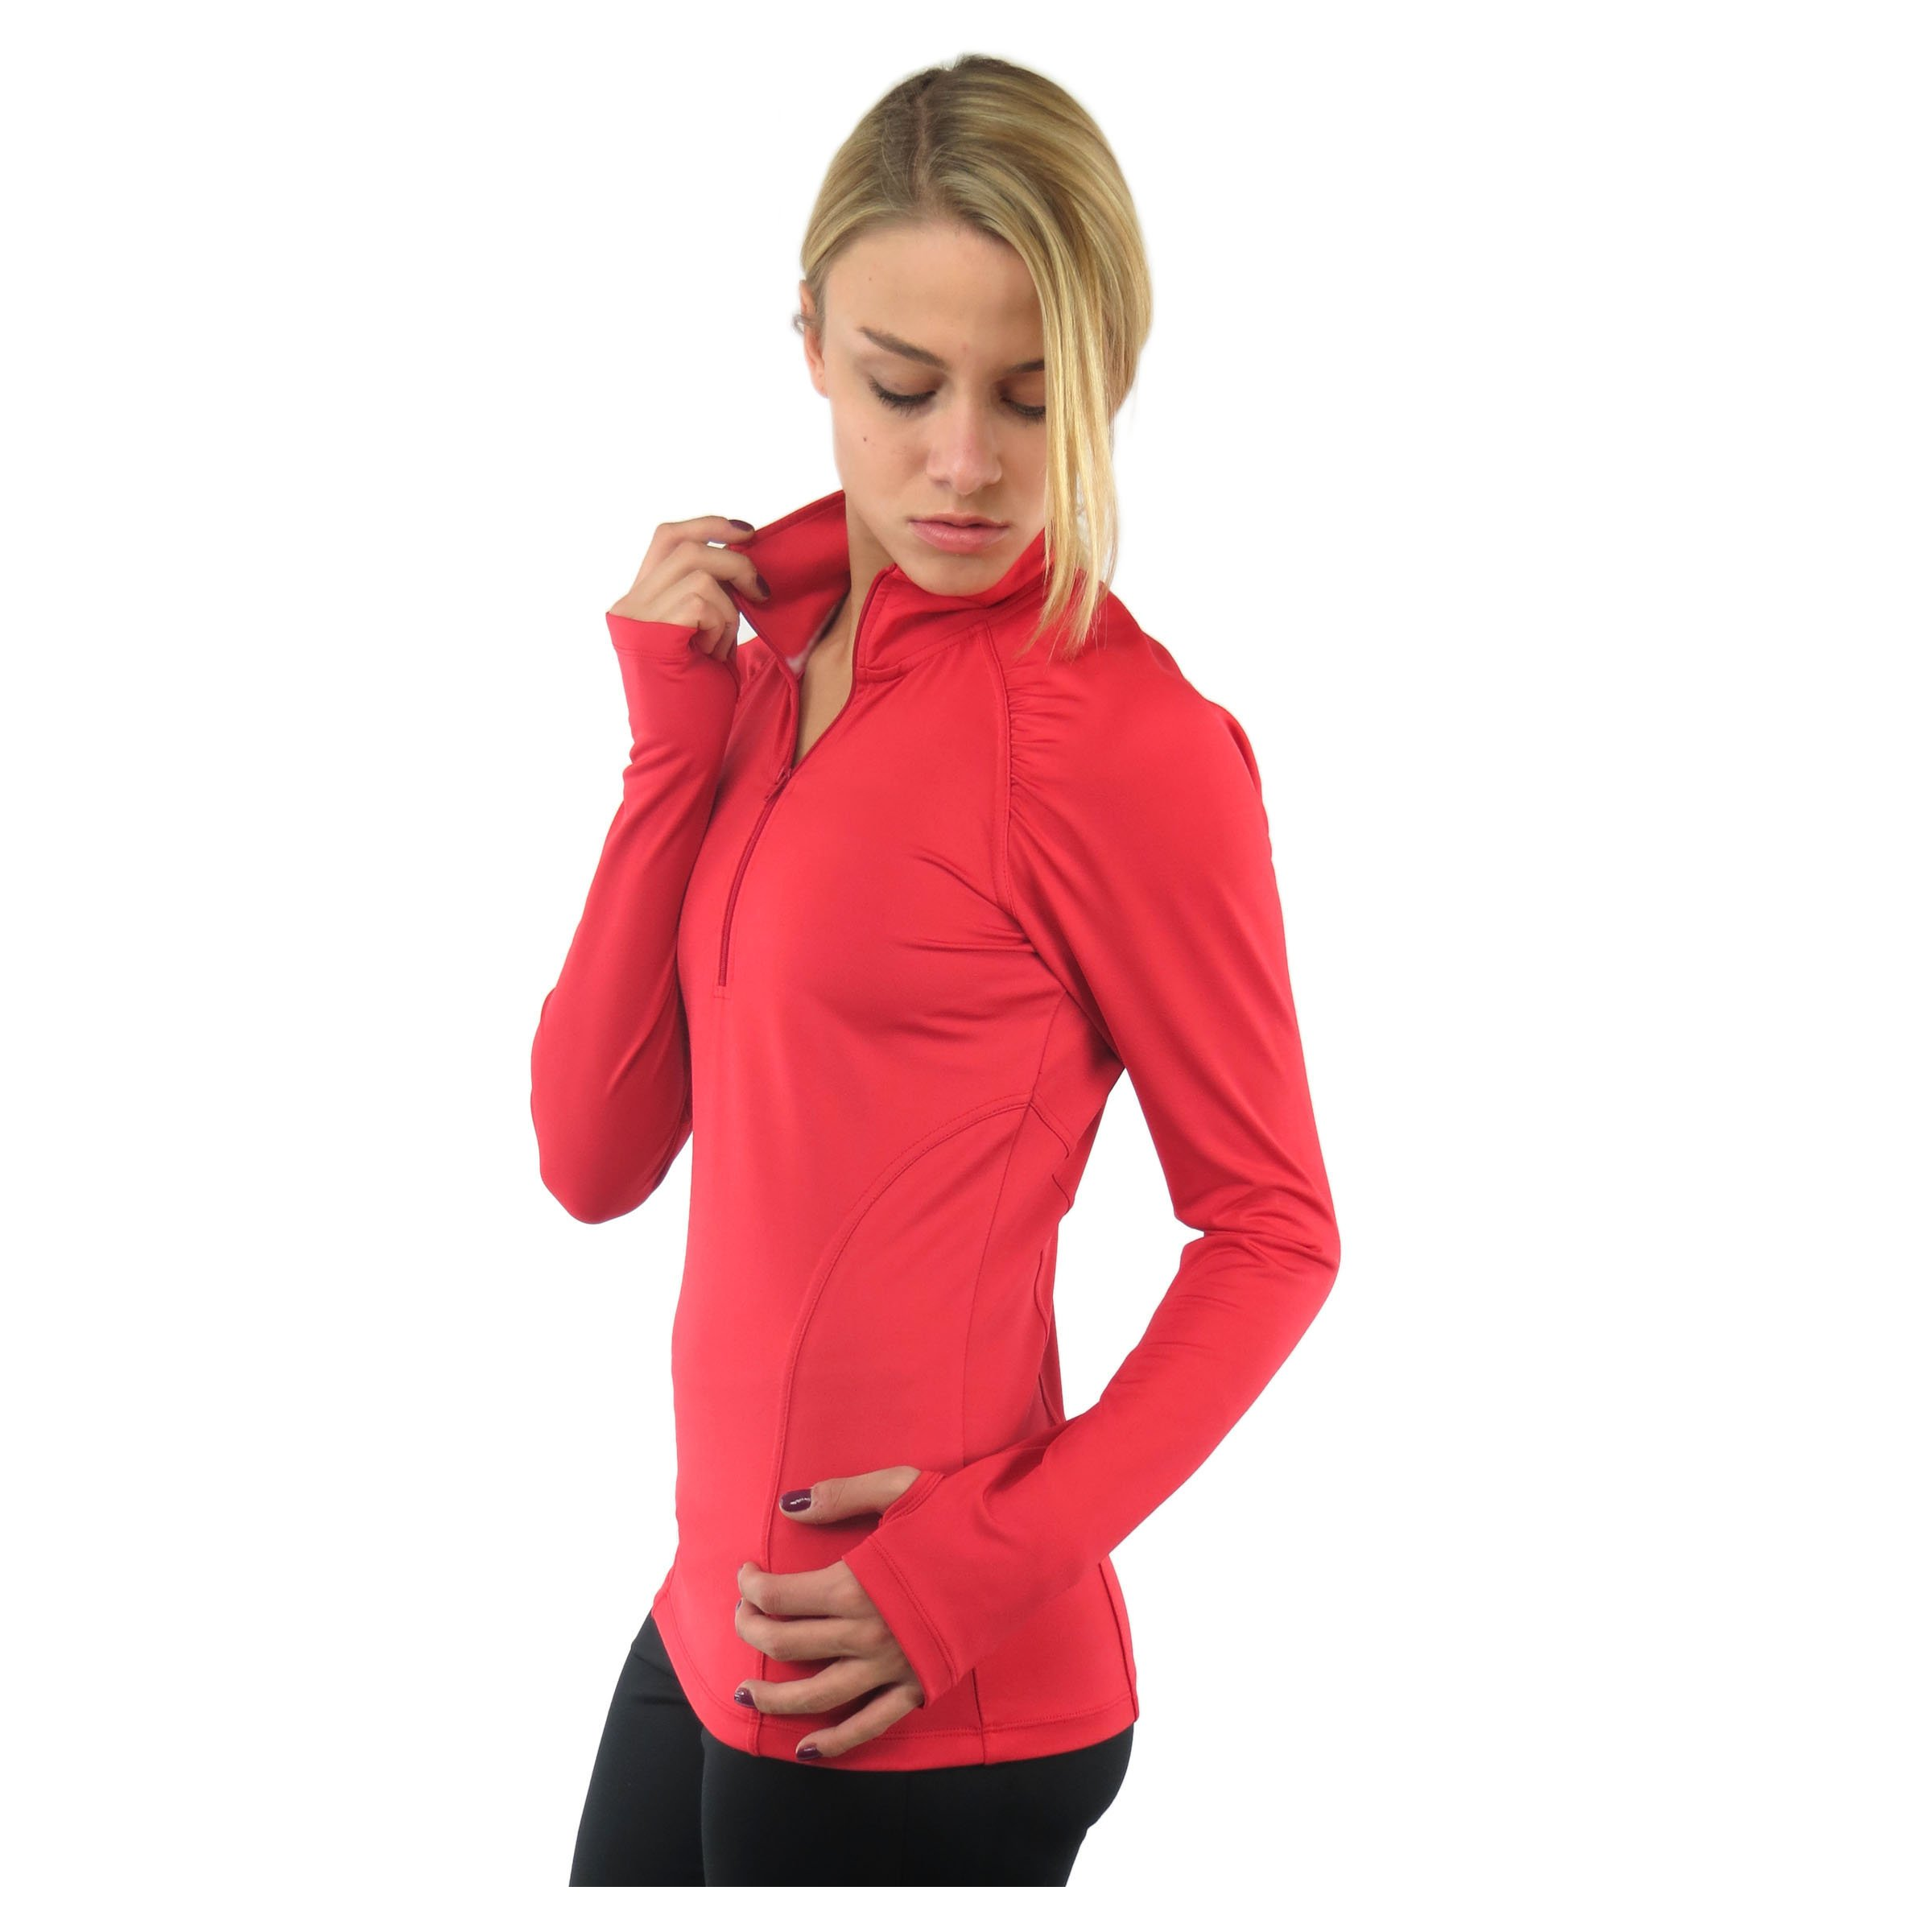 Alex + Abby Women's Essential Pullover Small Cayenne